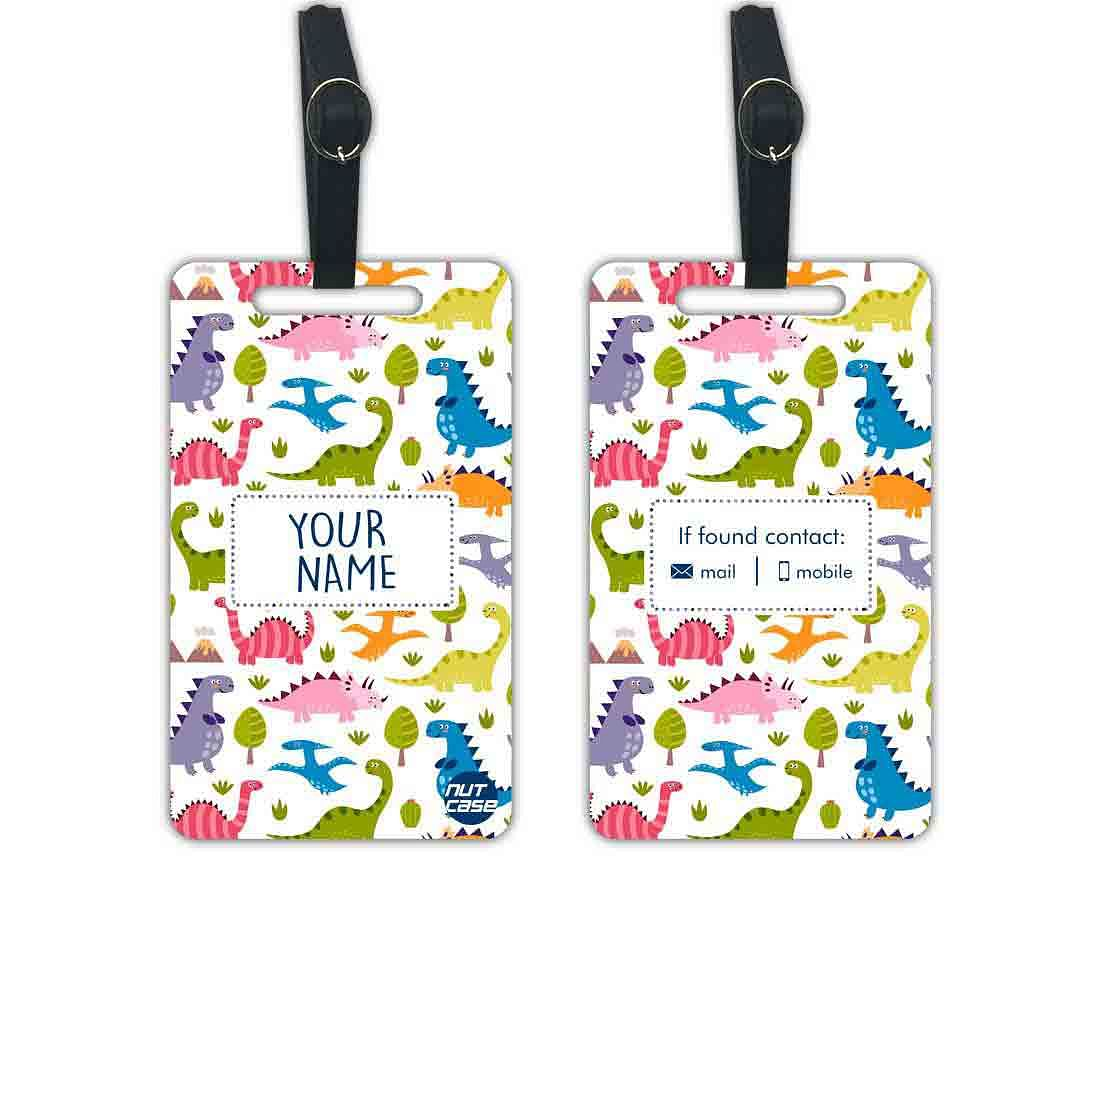 Custom Bag Luggage Tags for Kids - Add your Name - Set of 2